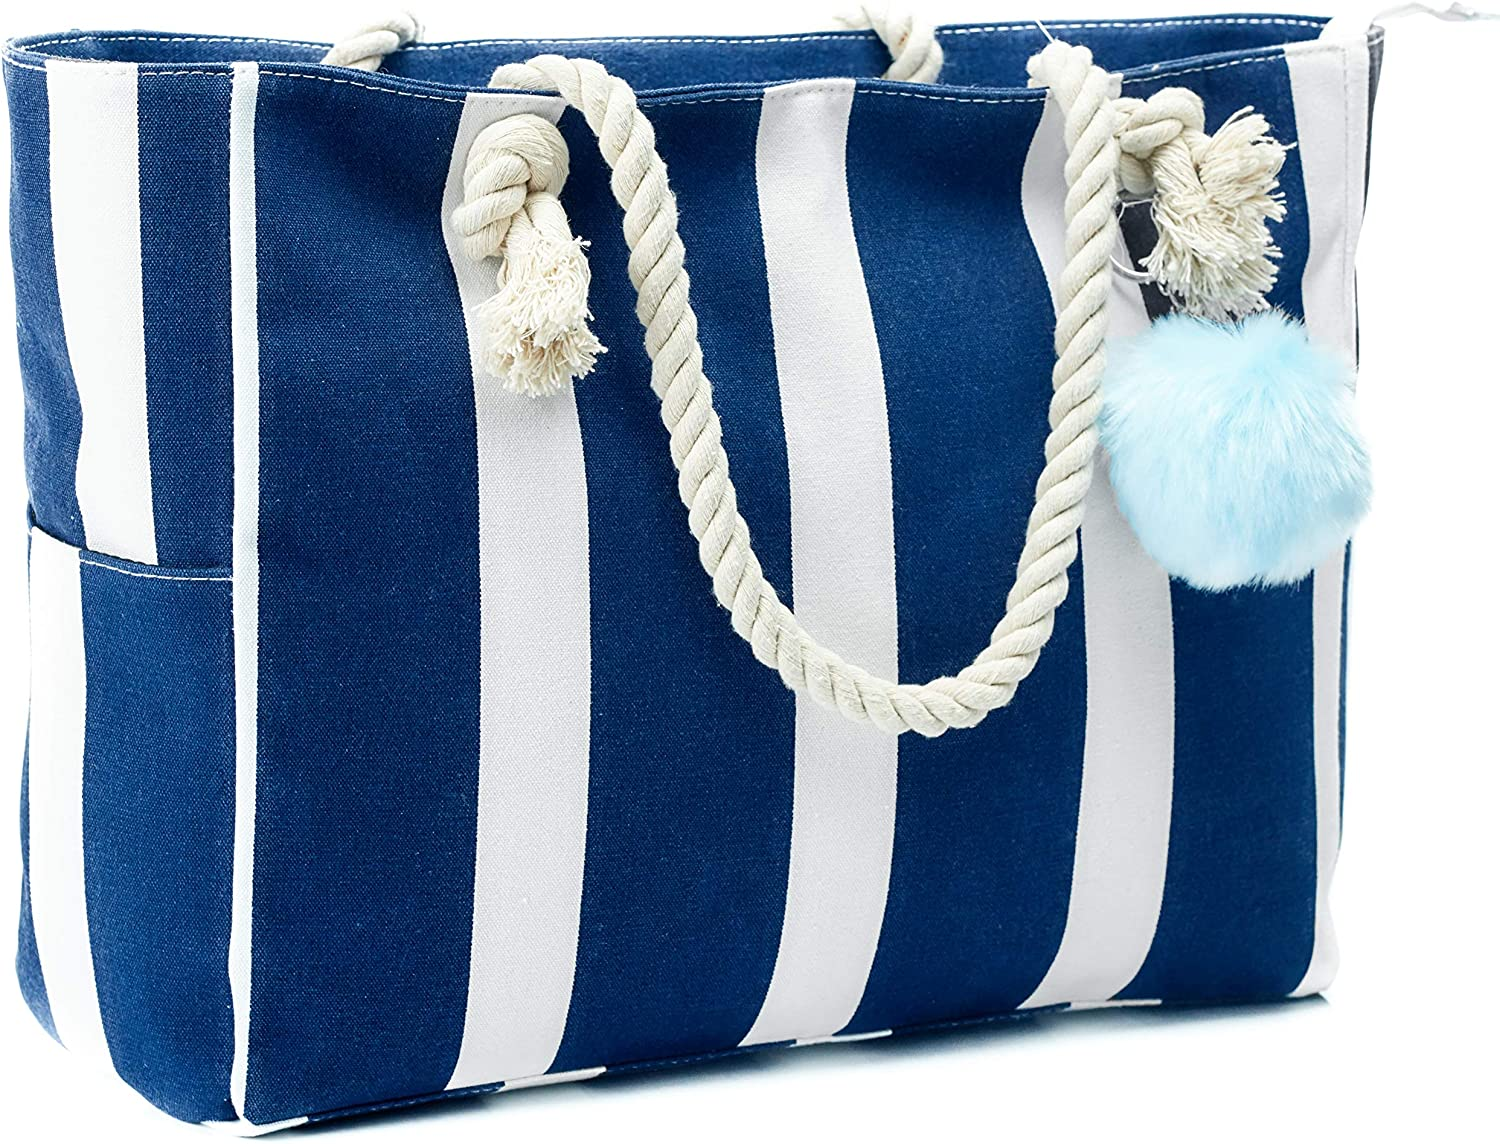 mart Large Canvas Shoulder Bag - Beach Cotton Tote Handles with Mail order Rope